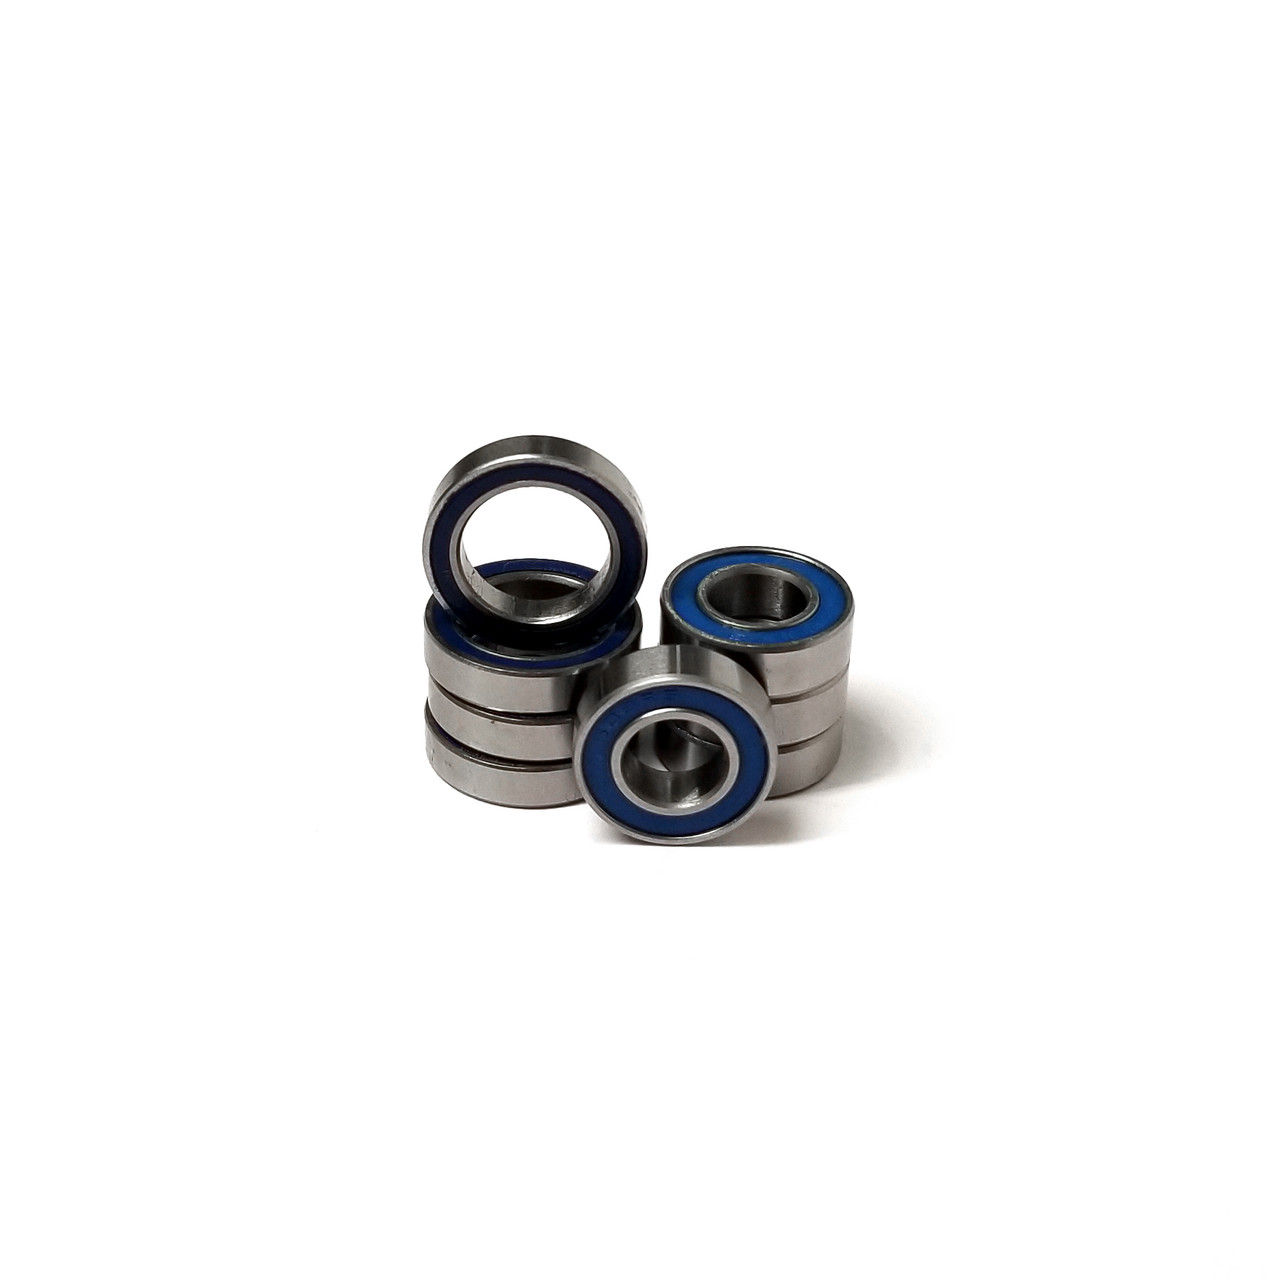 Traxxas MAXX 4S 10th Scale Blue Rubber sealed wheel bearings.  8 pcs. Includes 4-8x16x5 mm and 4-12x18x4 mm Bearings.